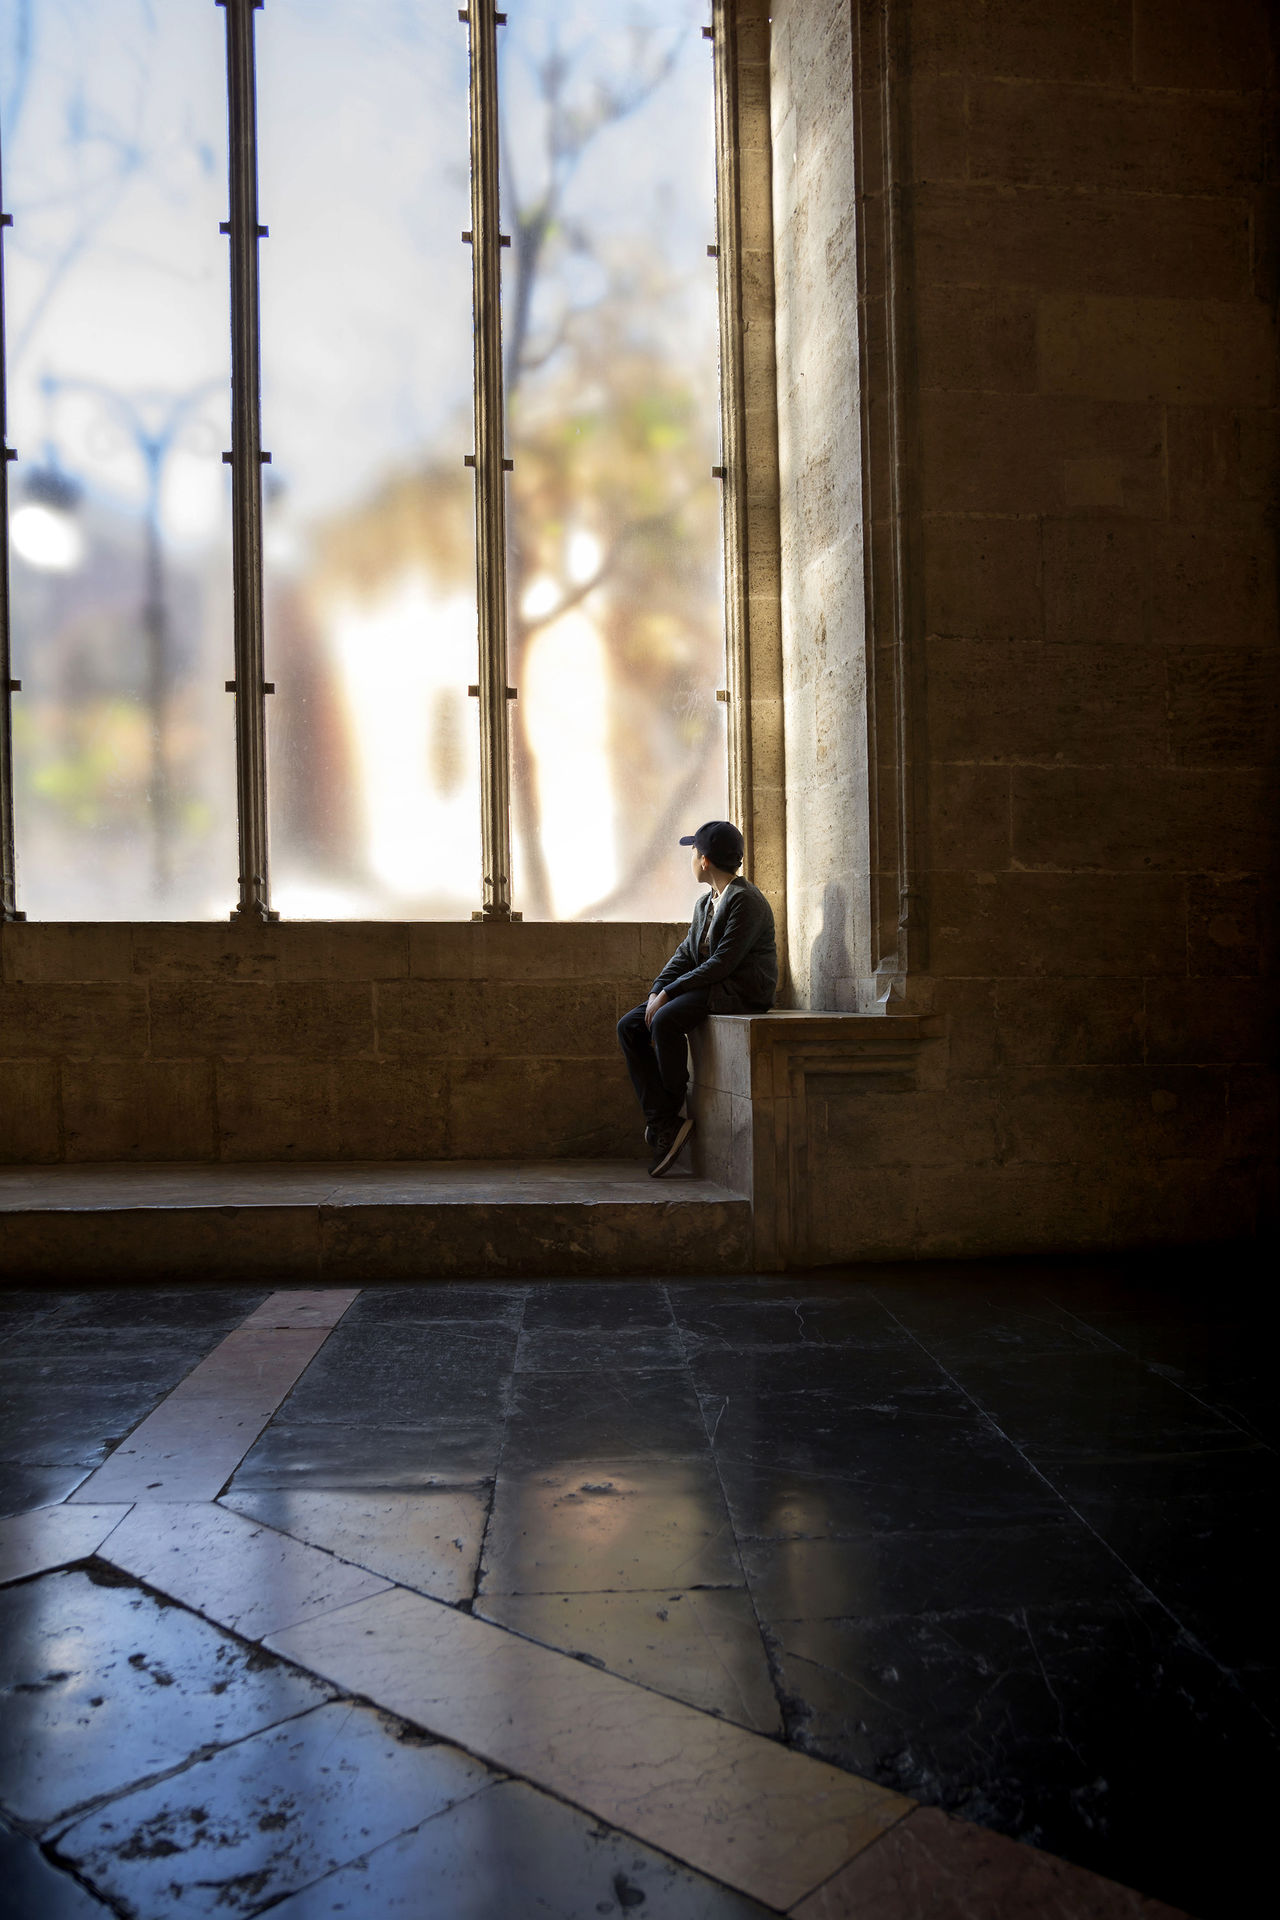 Waiting. Conceptual image. Amazing Architecture Atmospheric Mood Boy Built Structure City Colors Conceptual Dark Darkness And Light Day Indoors  Indoors  Light Looking Mood People People Watching Perspective Tourism Travel Valencia, Spain València Waiting Window